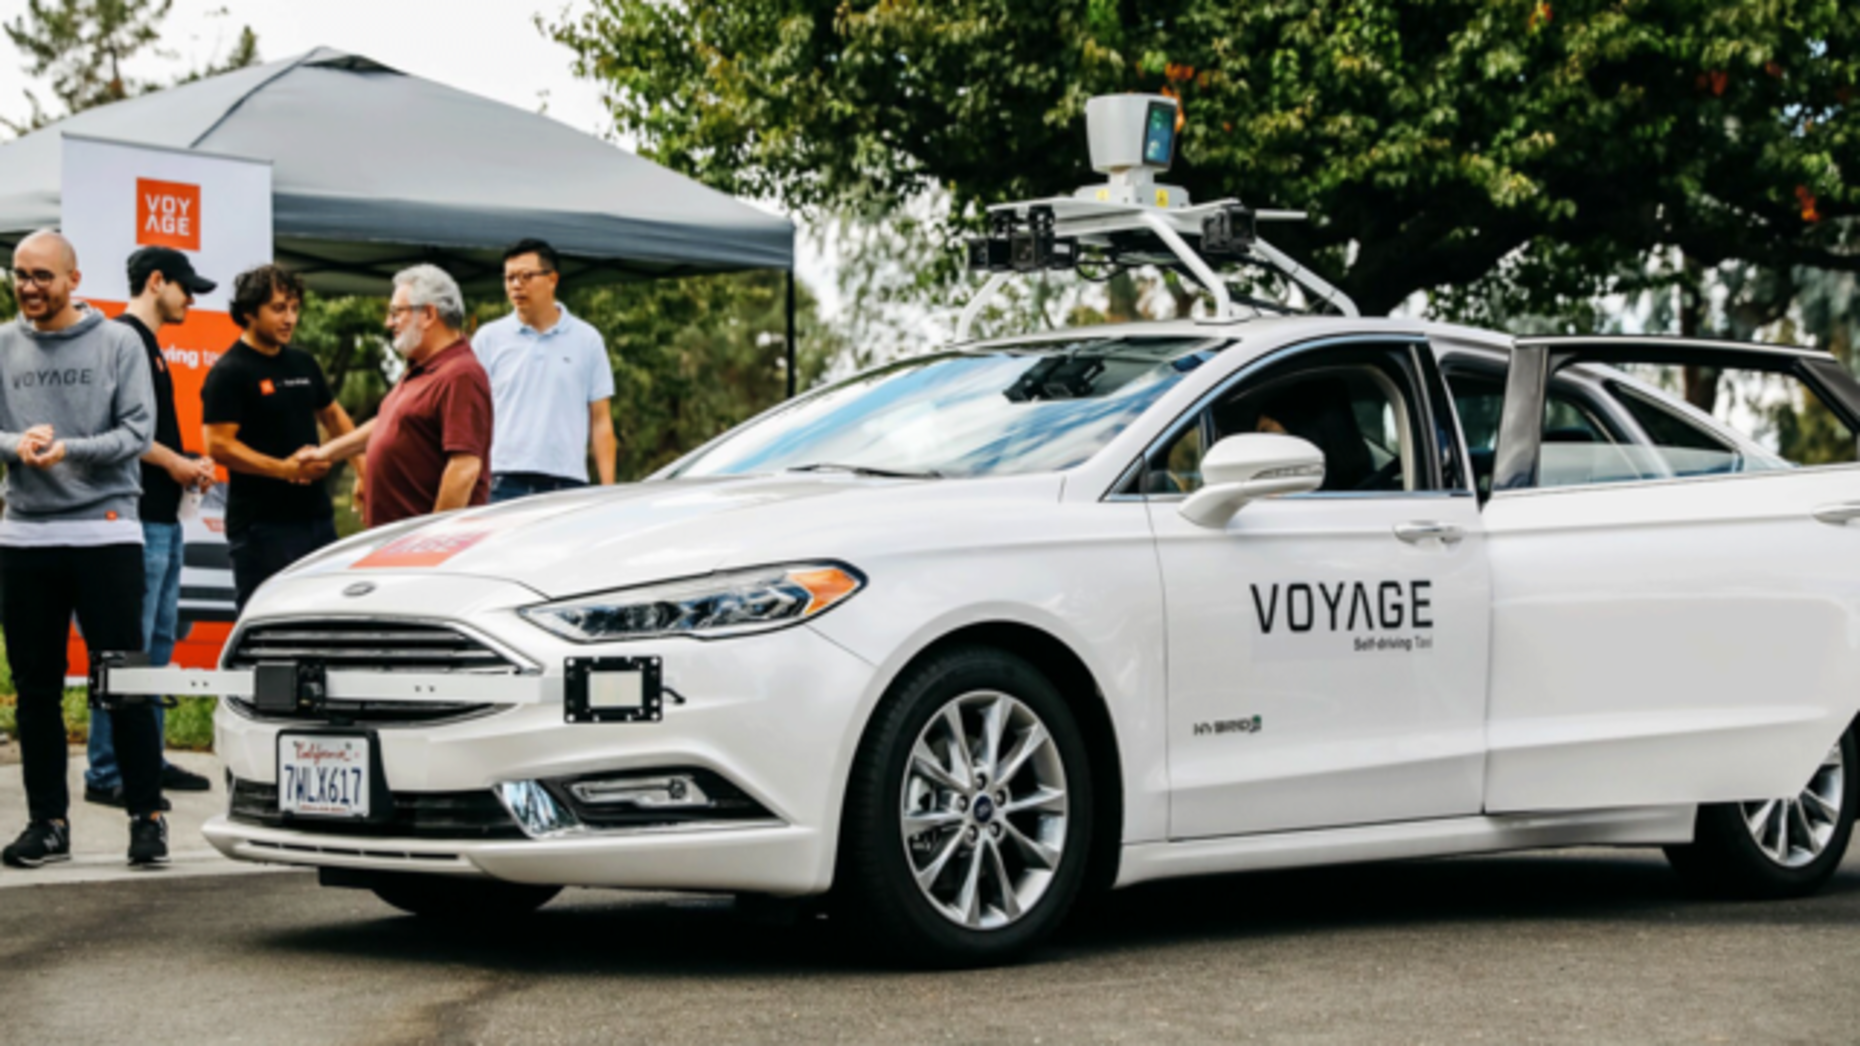 A Voyage self-driving car. Photo by Voyage.